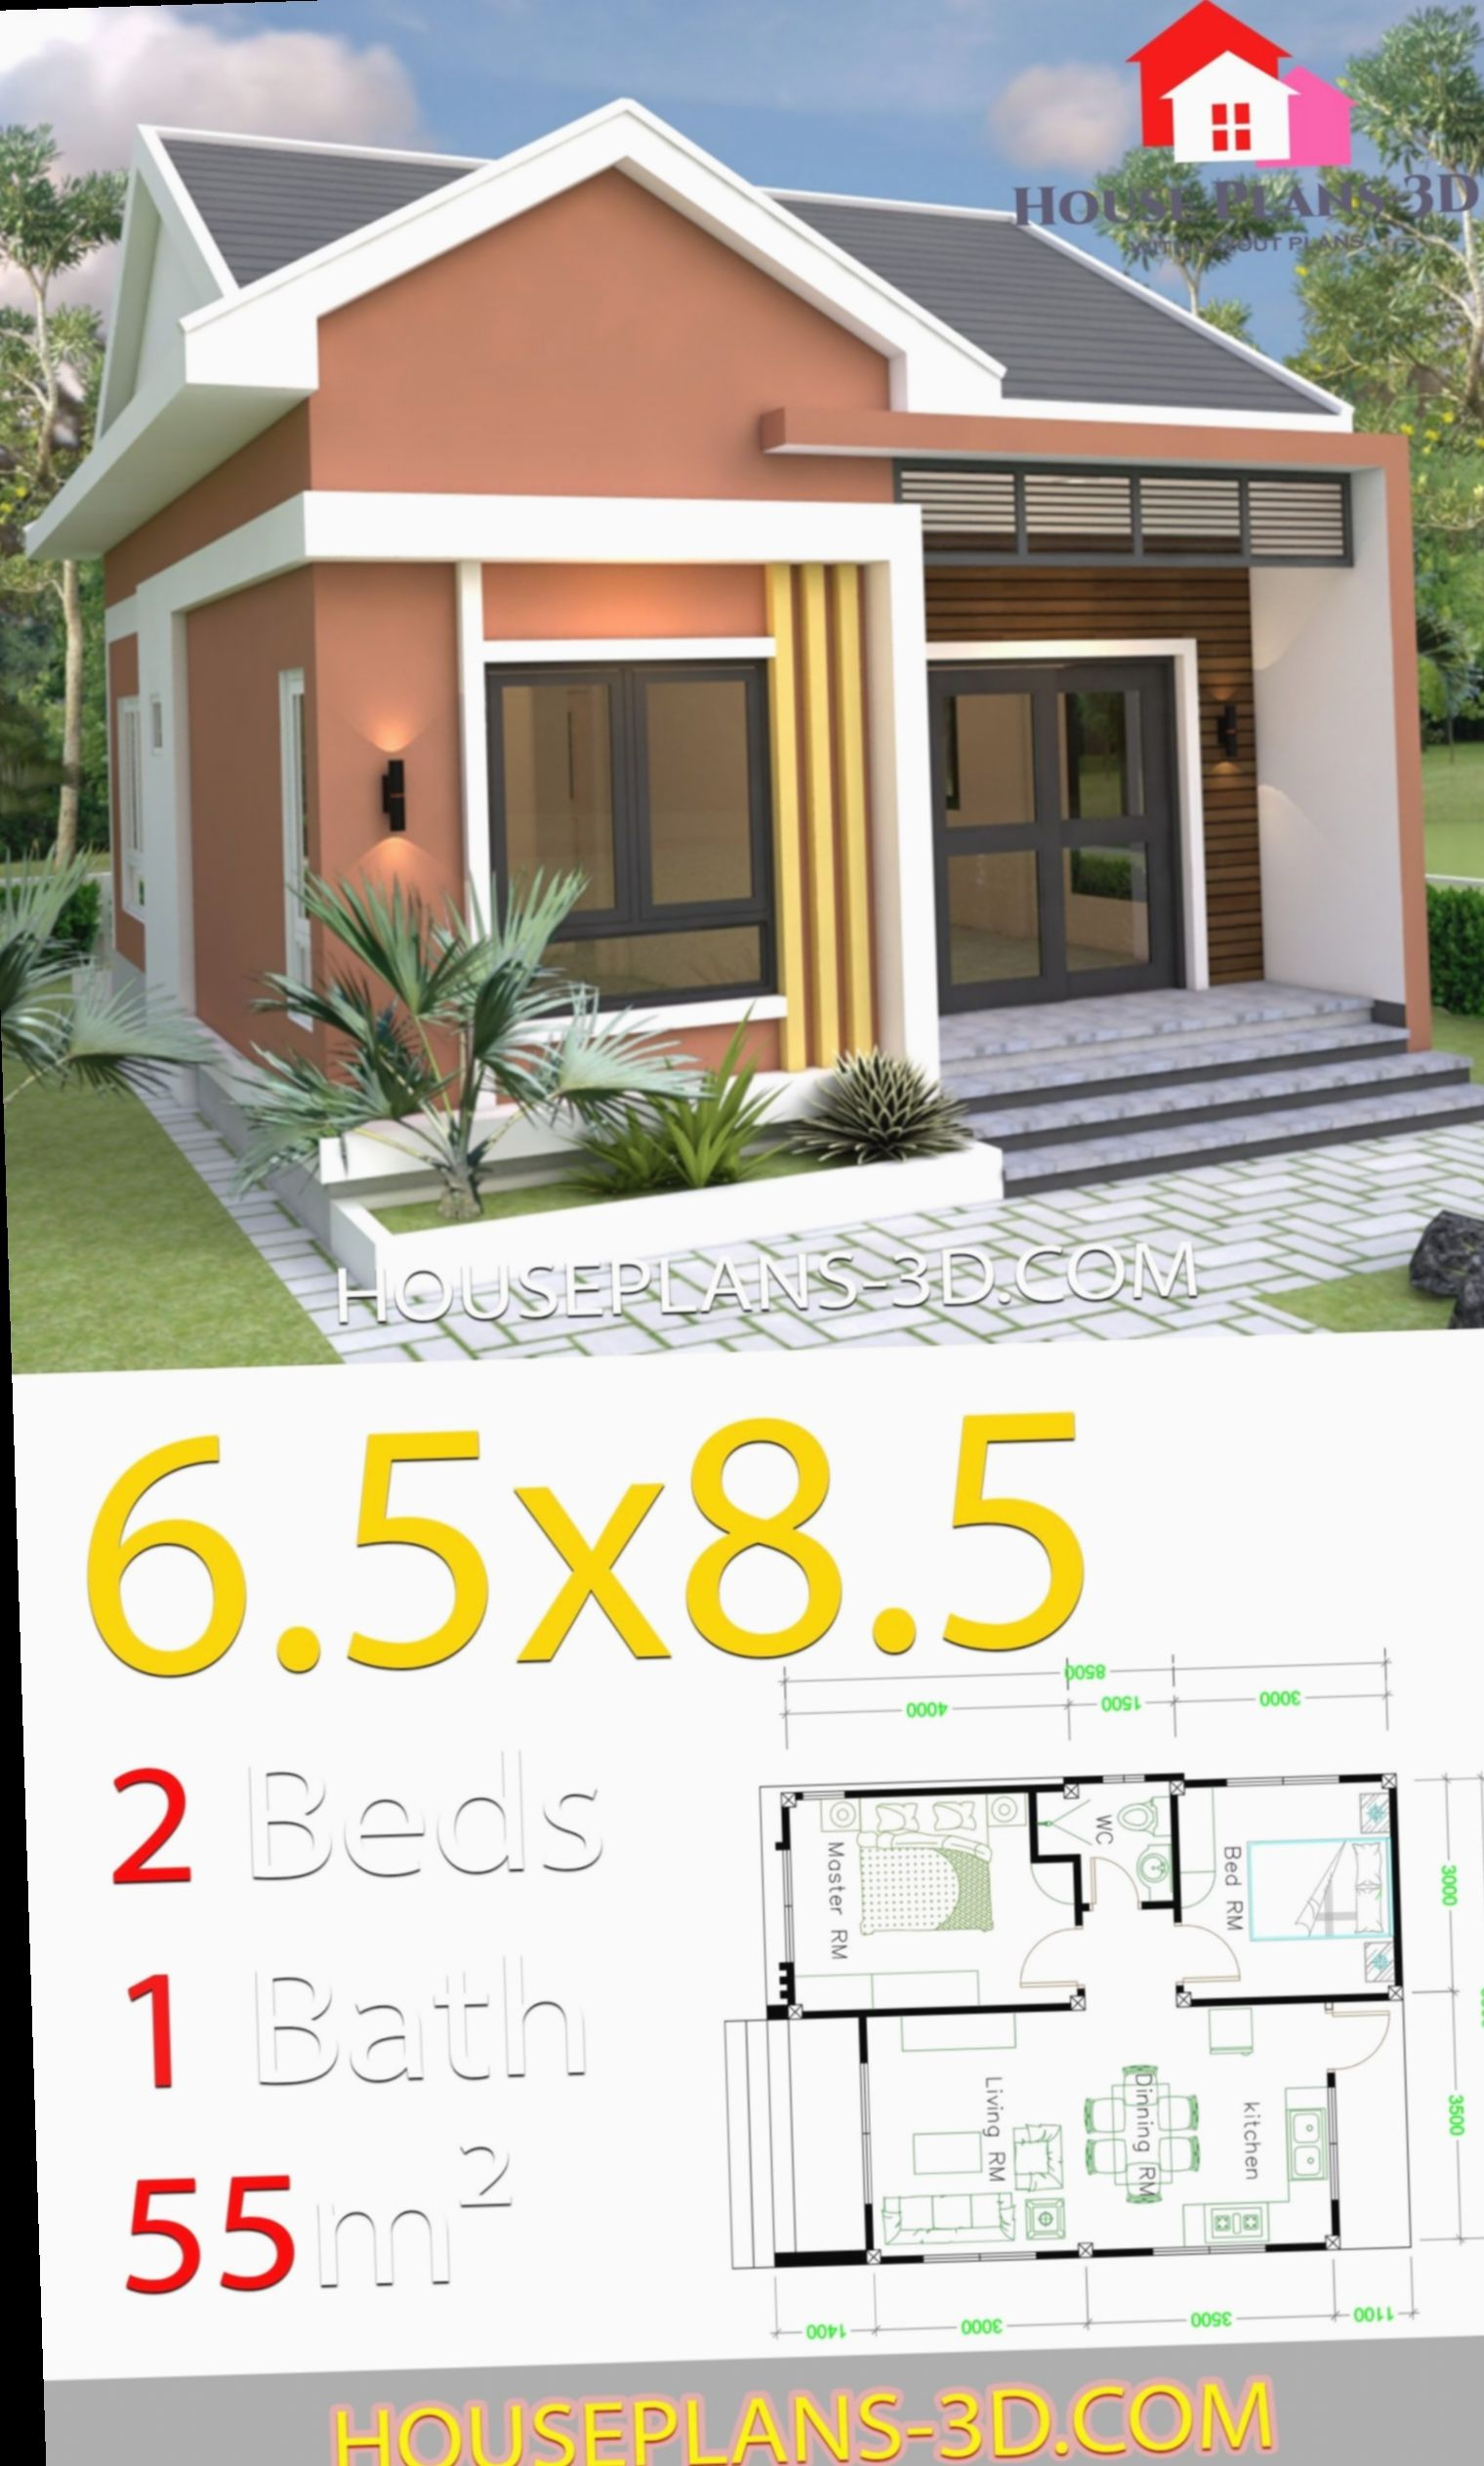 8 Dress Room Small Plan Affordable House Plans Small House Design Plans House Plans